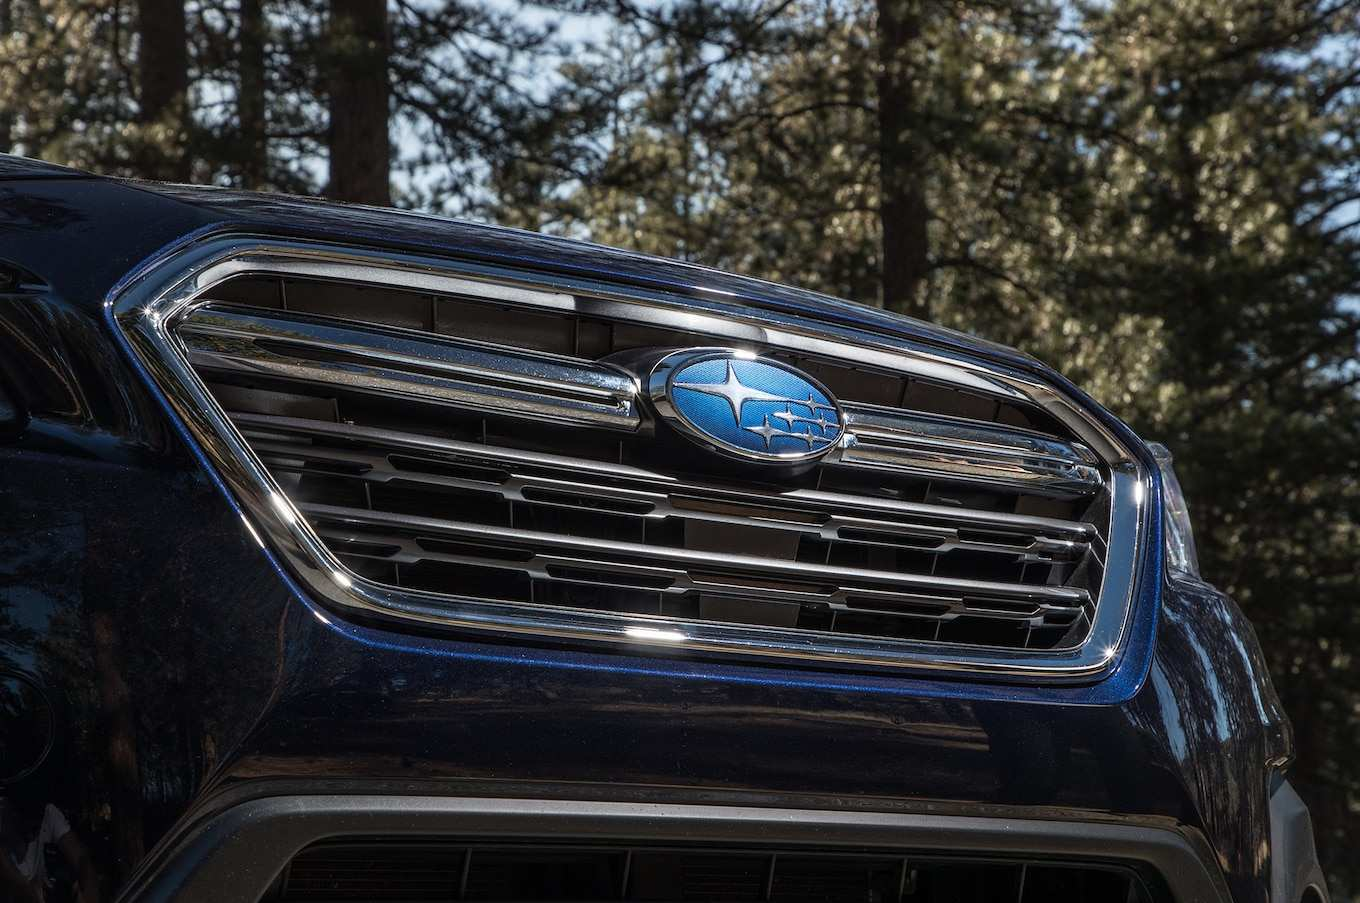 82 All New 2020 Subaru Outback Wagon Specs by 2020 Subaru Outback Wagon